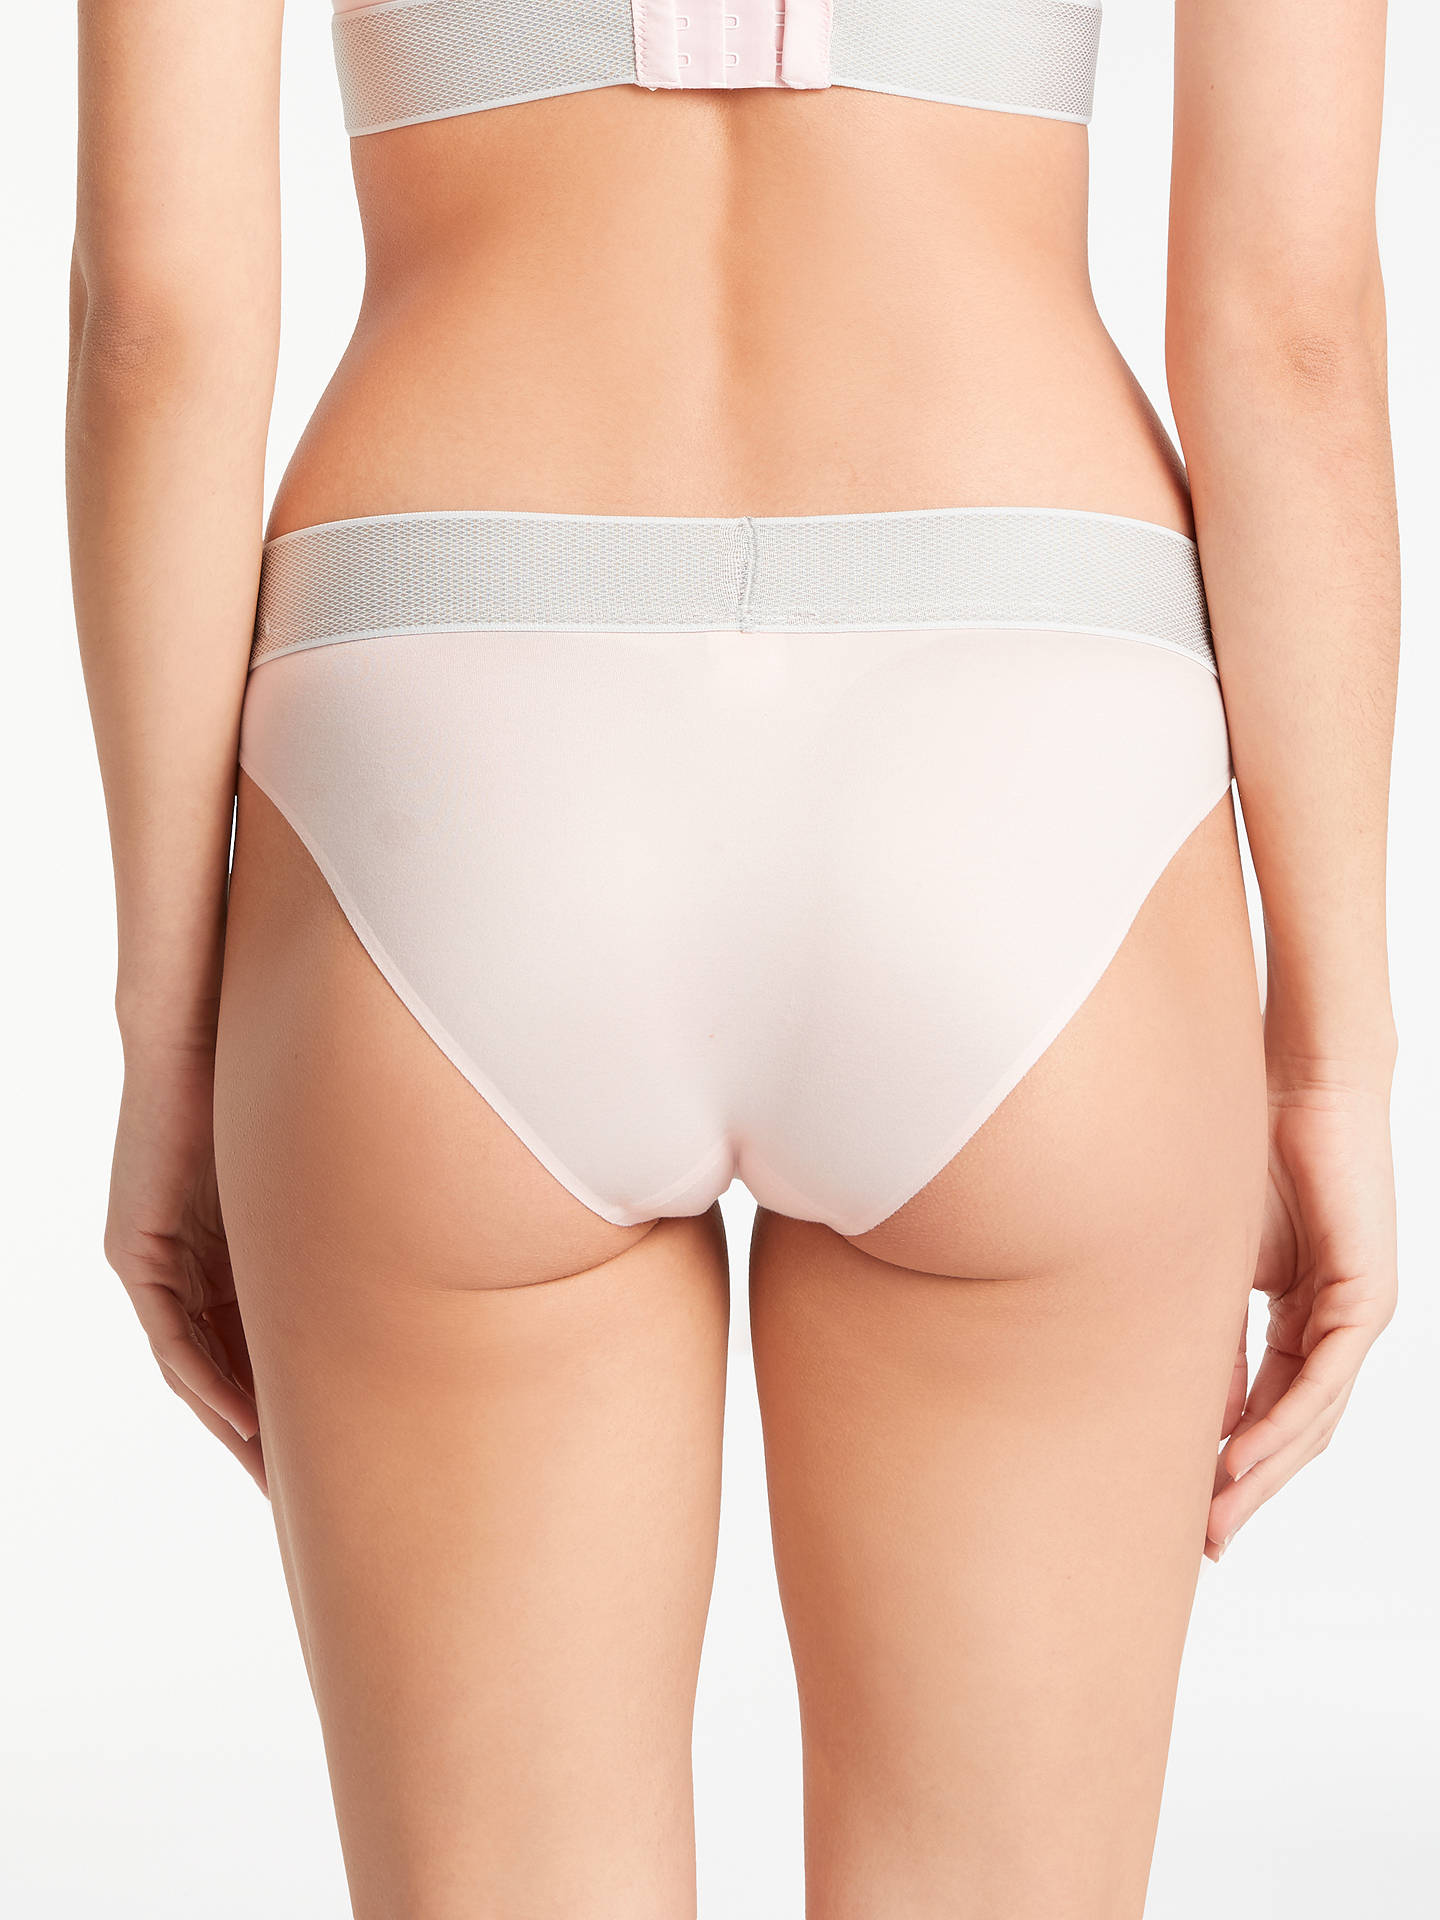 BuyCalvin Klein Underwear Customized Stretch Bikini Briefs, Attract, L Online at johnlewis.com